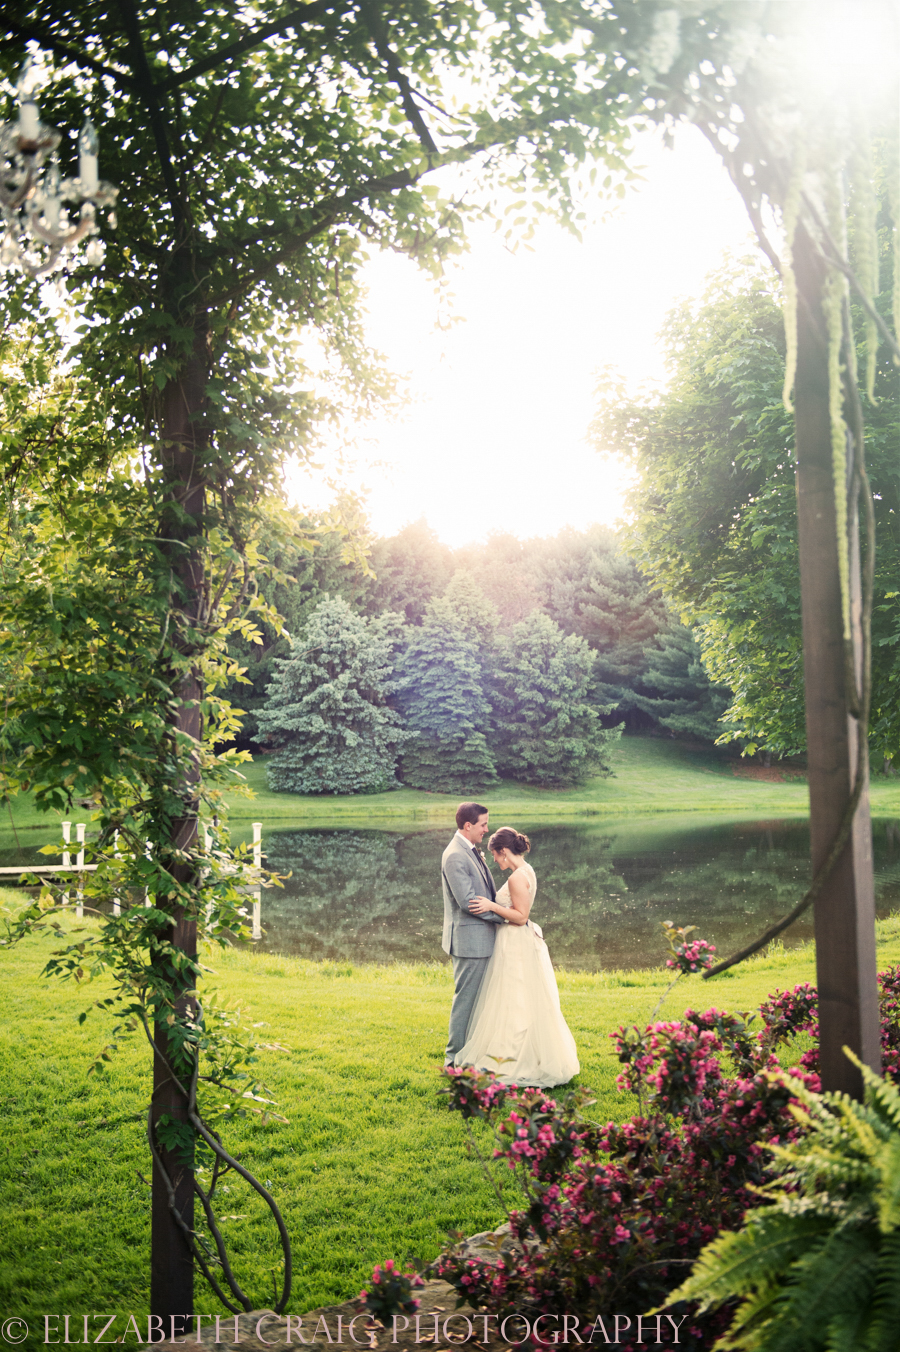 Shady Elms Farm Weddings and Receptions Elizabeth Craig Photography-0144